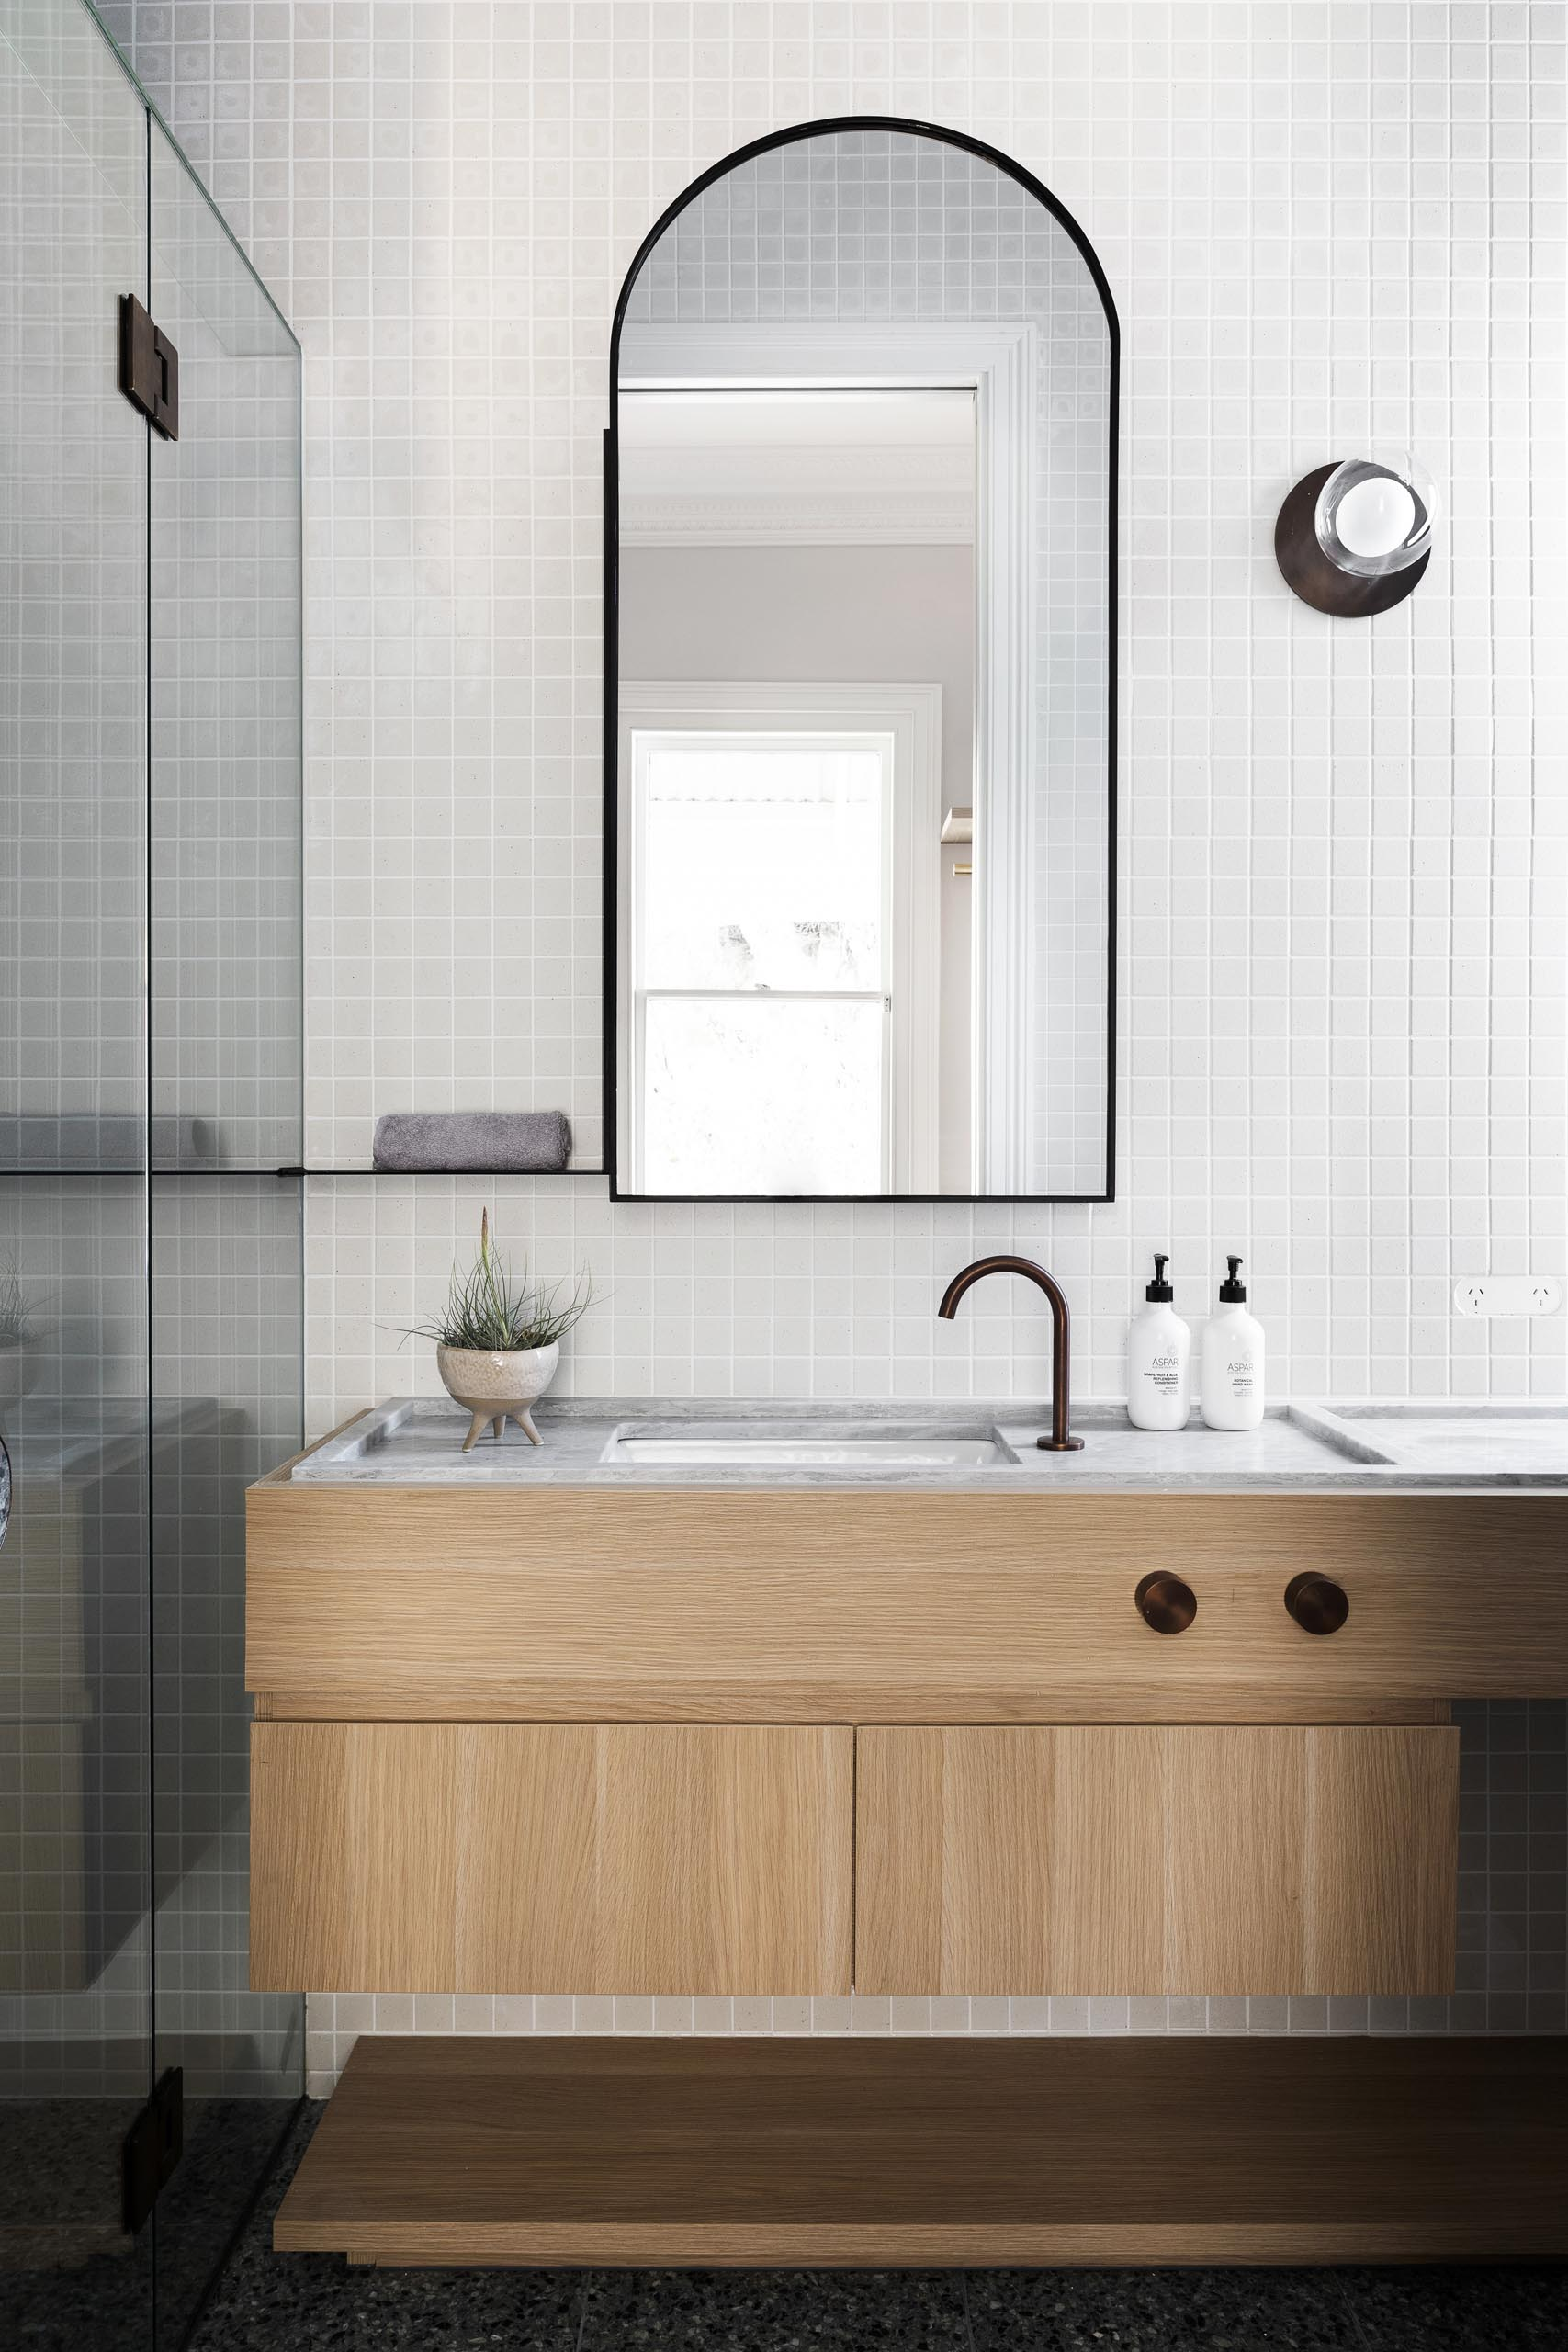 A modern bathroom with a wood vanity, tiled wall, and an arched mirror.